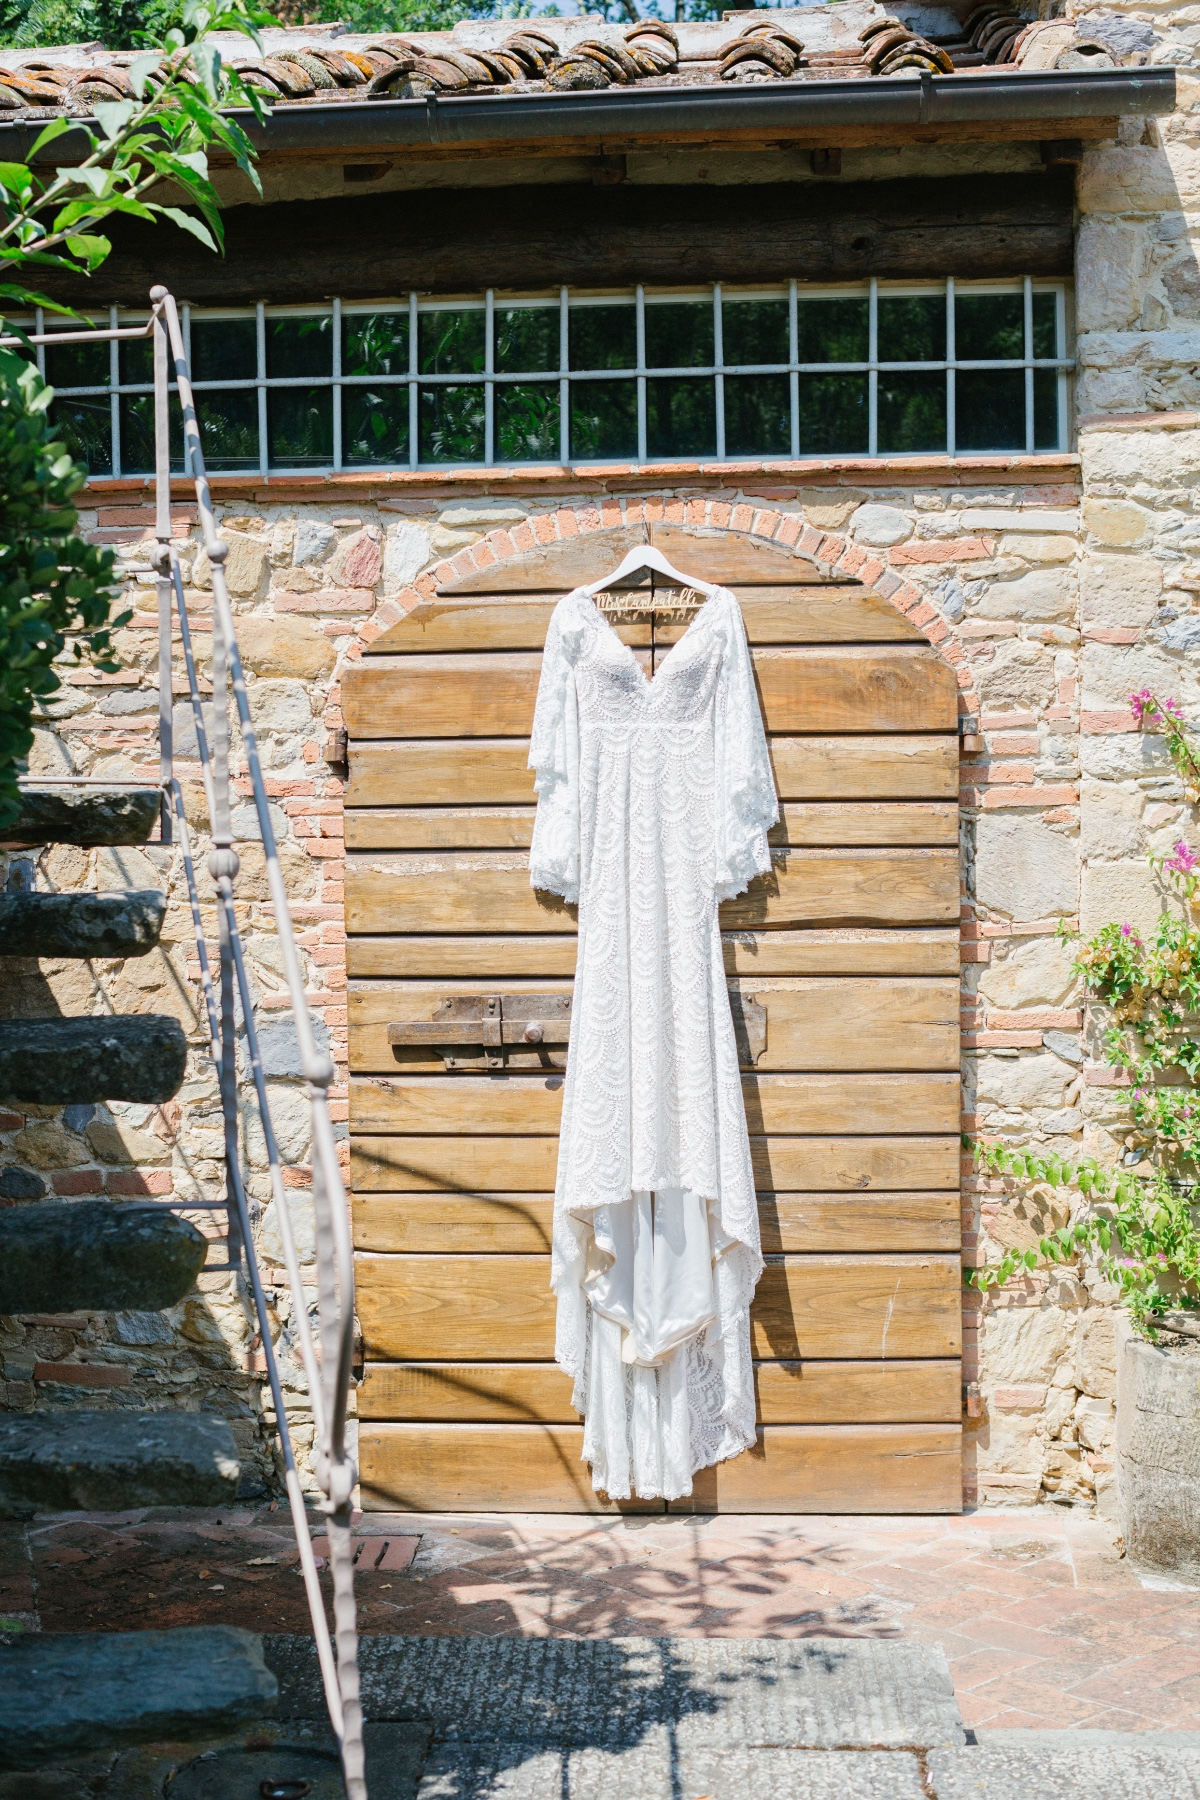 Enchanted Vintage Gipsy-Chic Fairytale in Tuscany